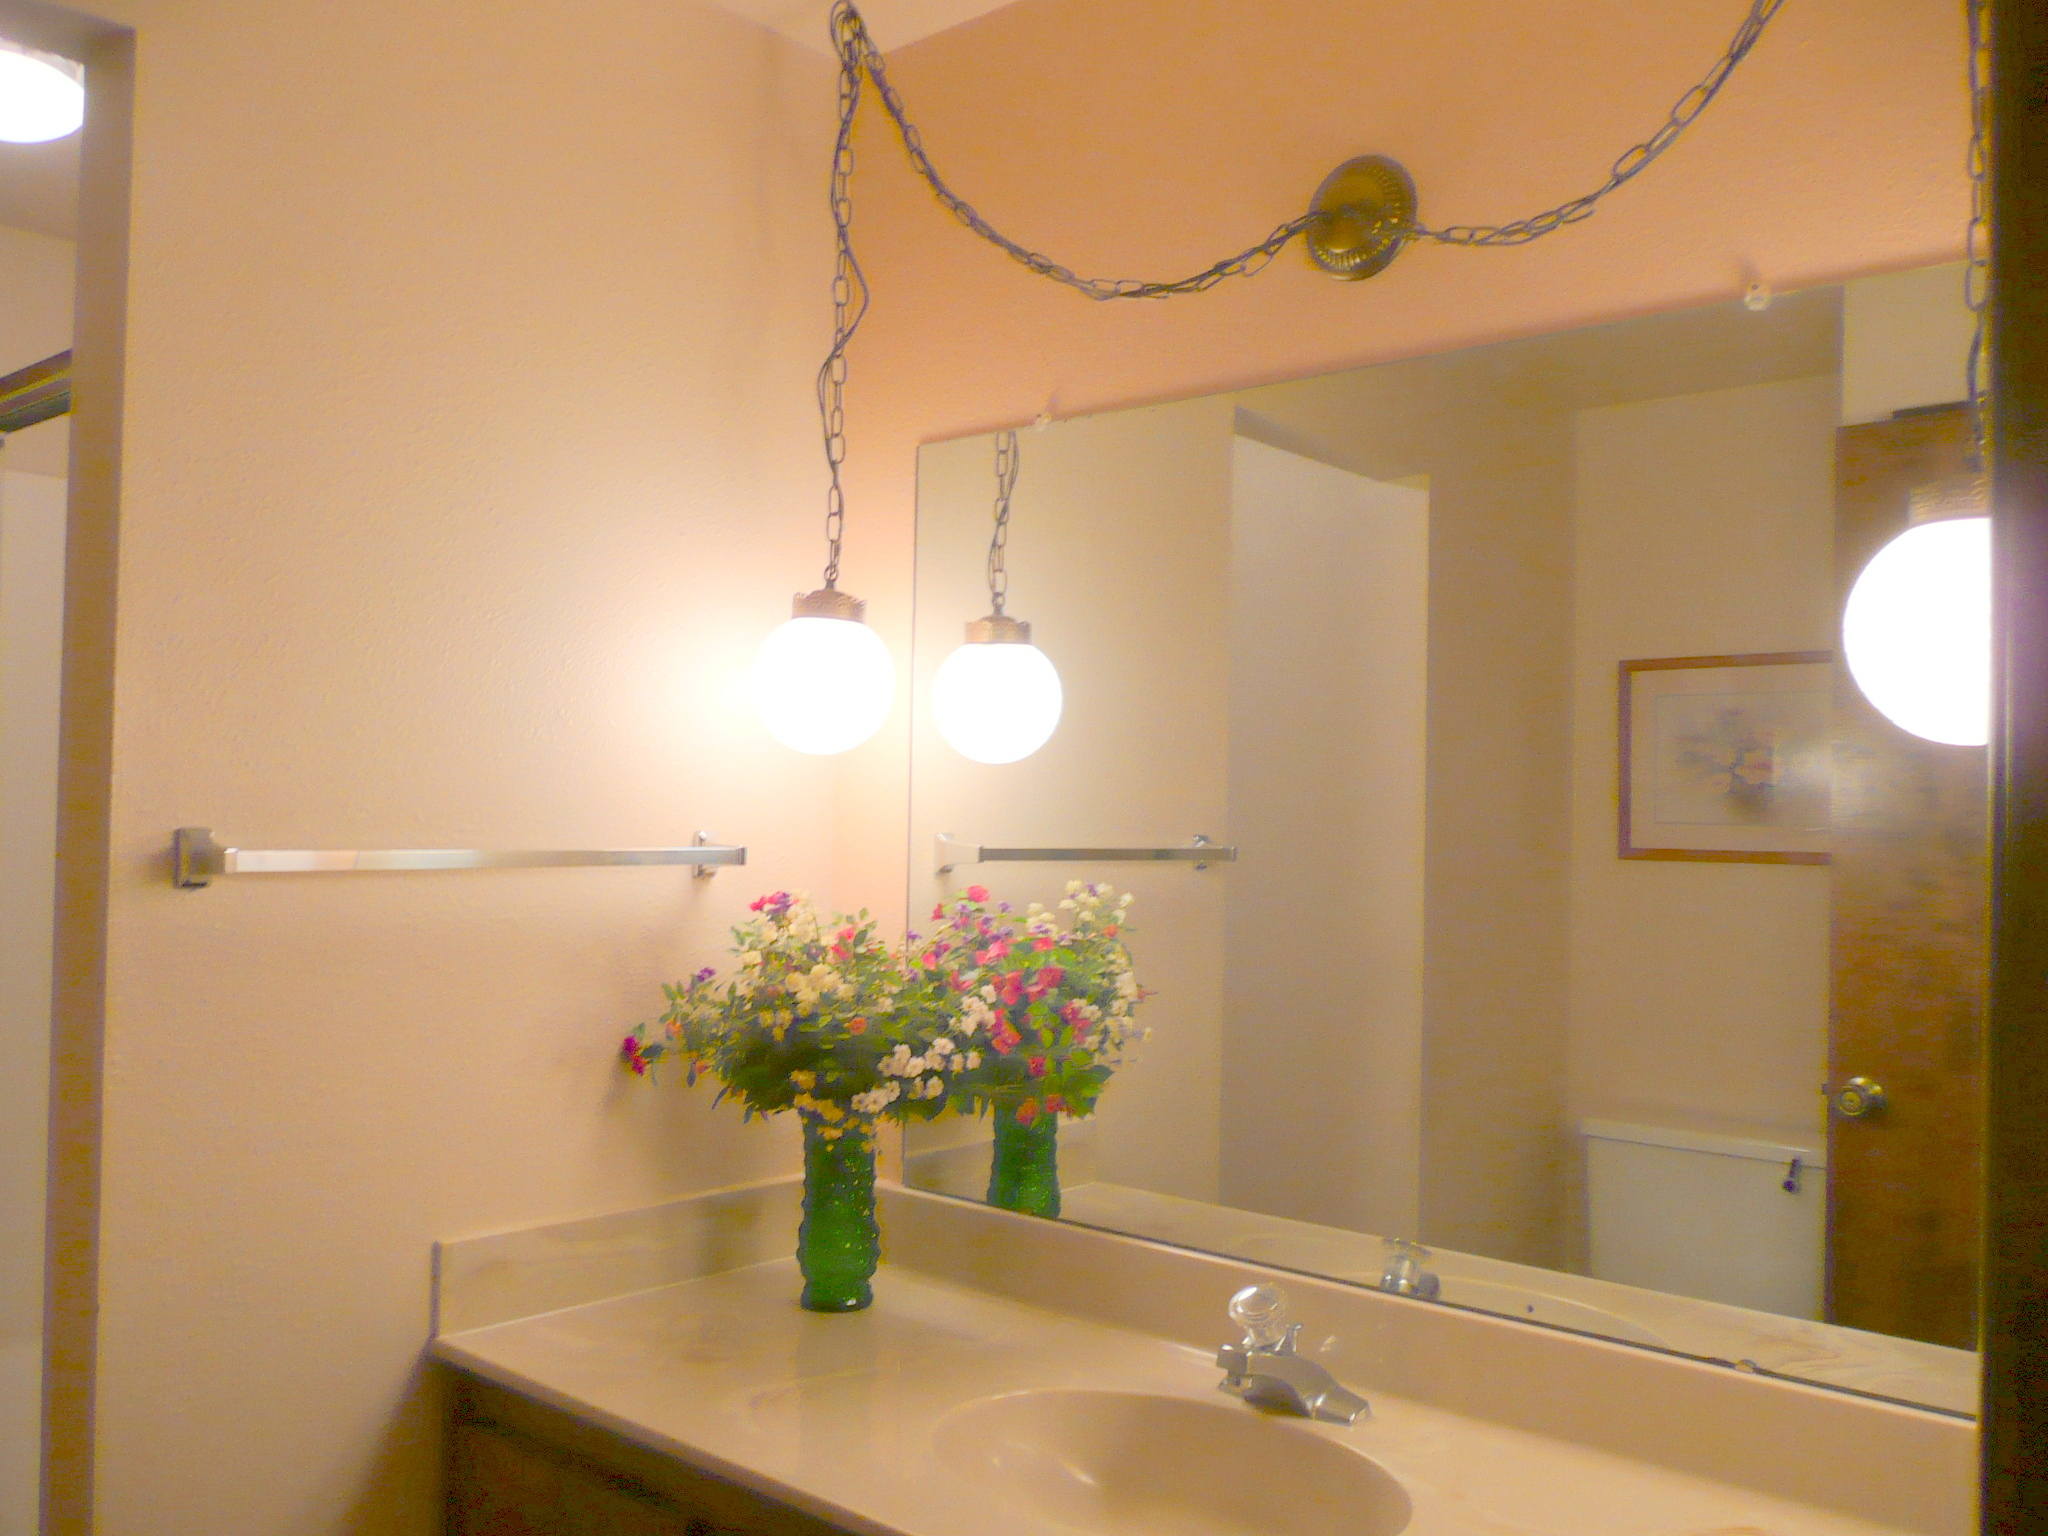 Bathroom Vanity Light Has No Junction Box updating bathroom vanity lighting – tips for home sellers | home